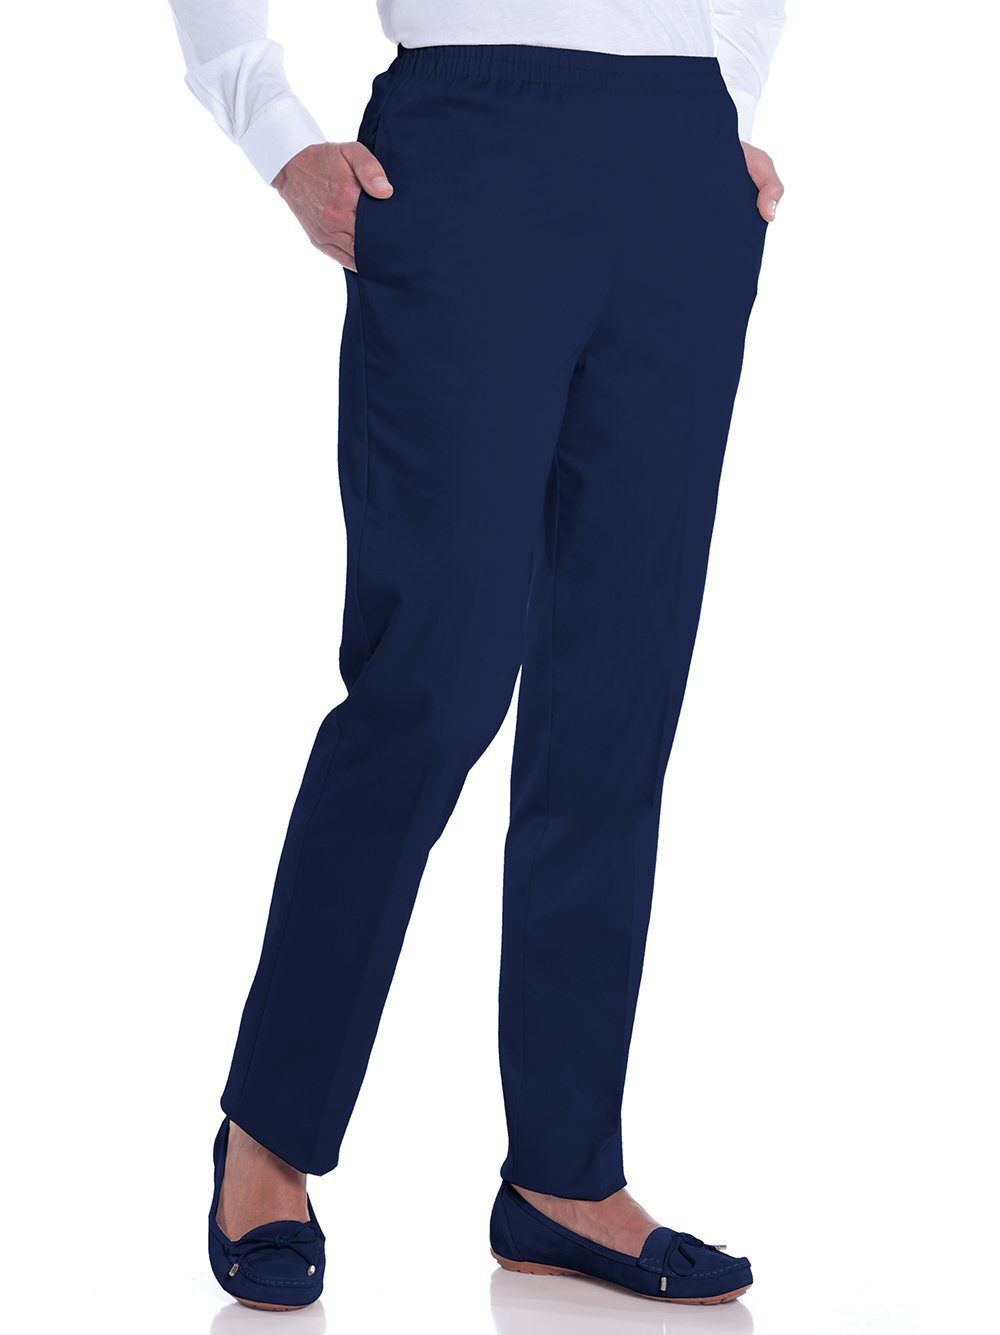 Petite Stretch Twill Pull-On Pant</br>Ink E76